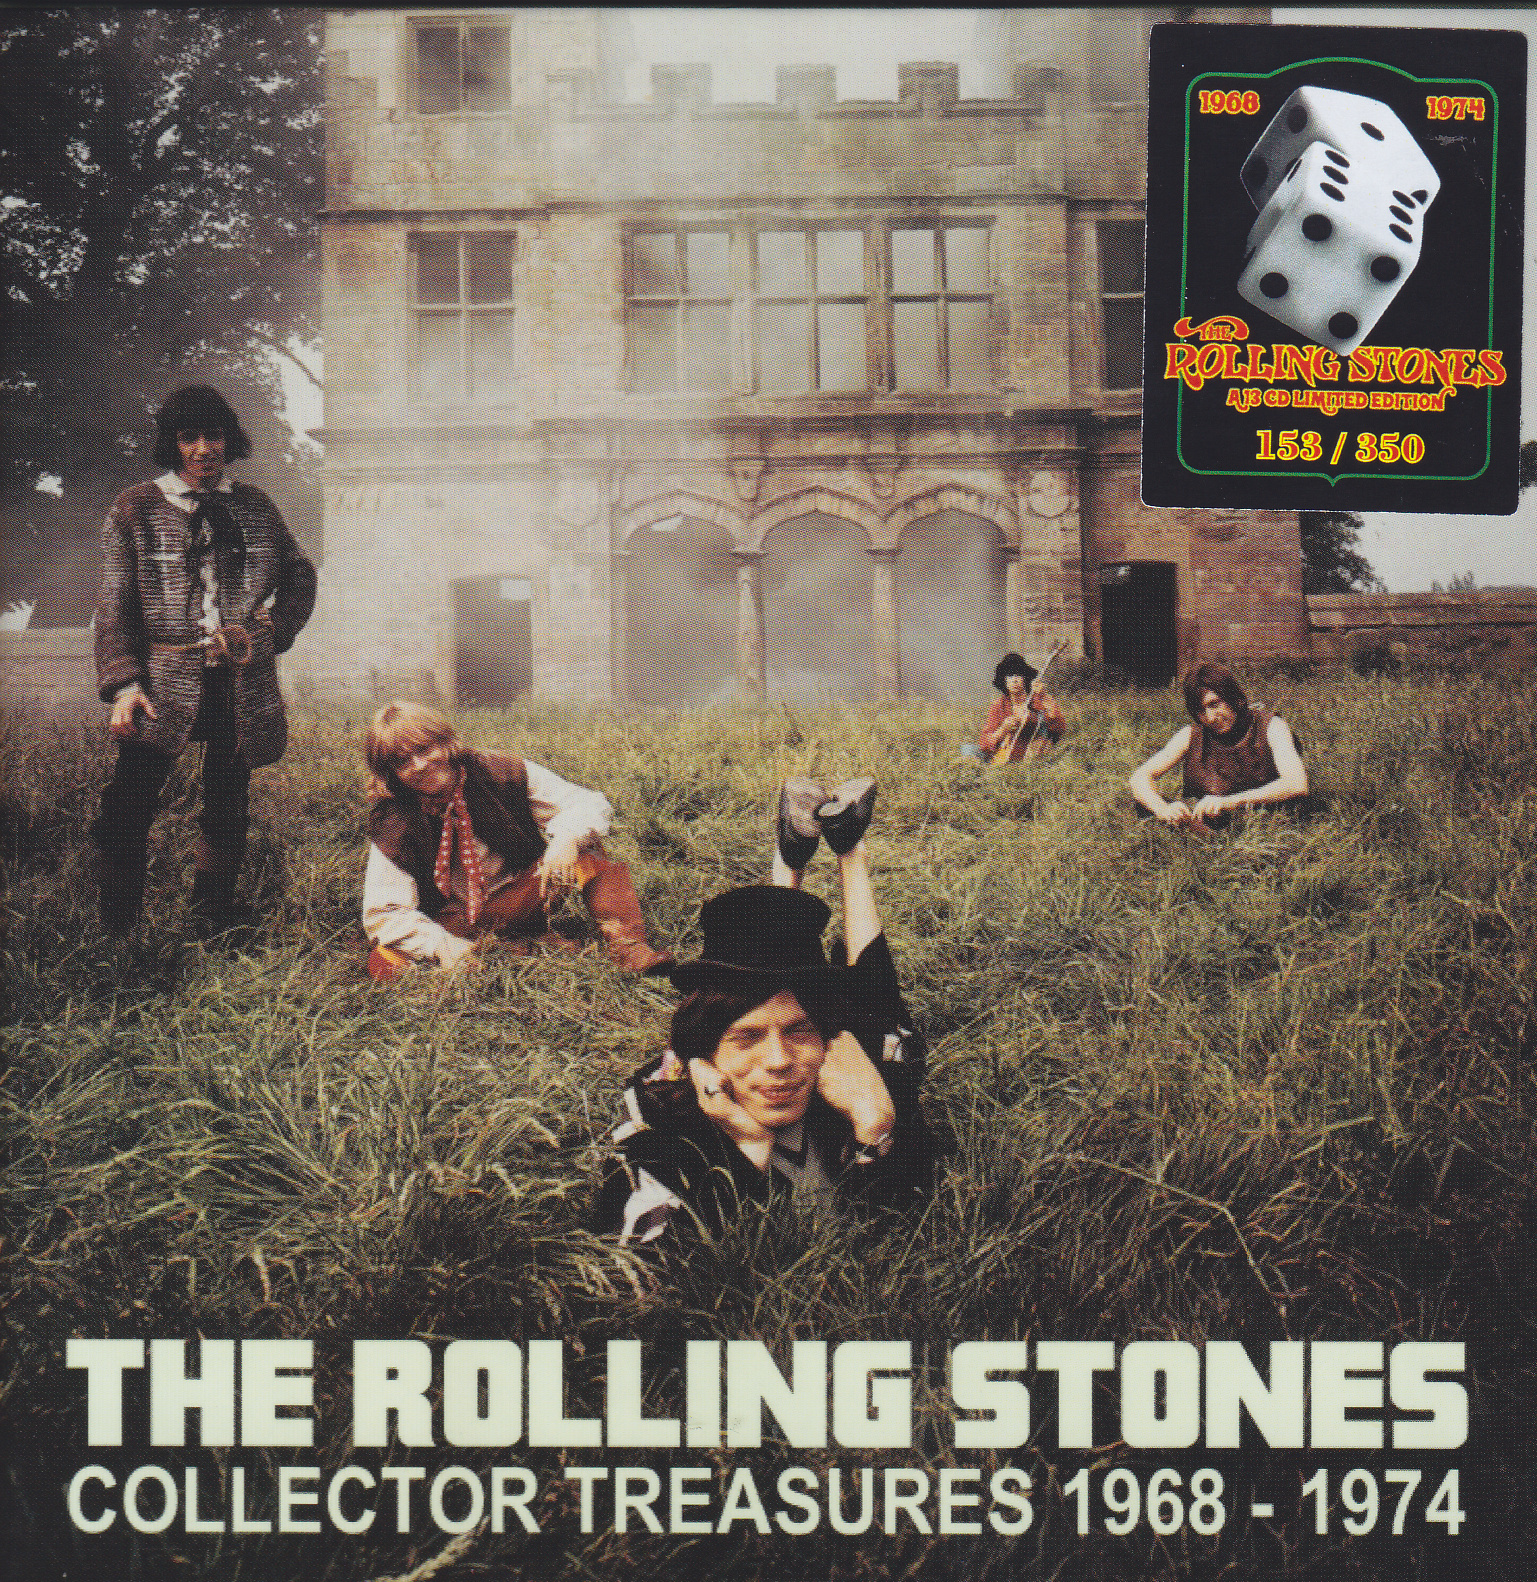 Rolling Stones, The - Collector Treasures 1968-1974(13CD Box Set) SF6874